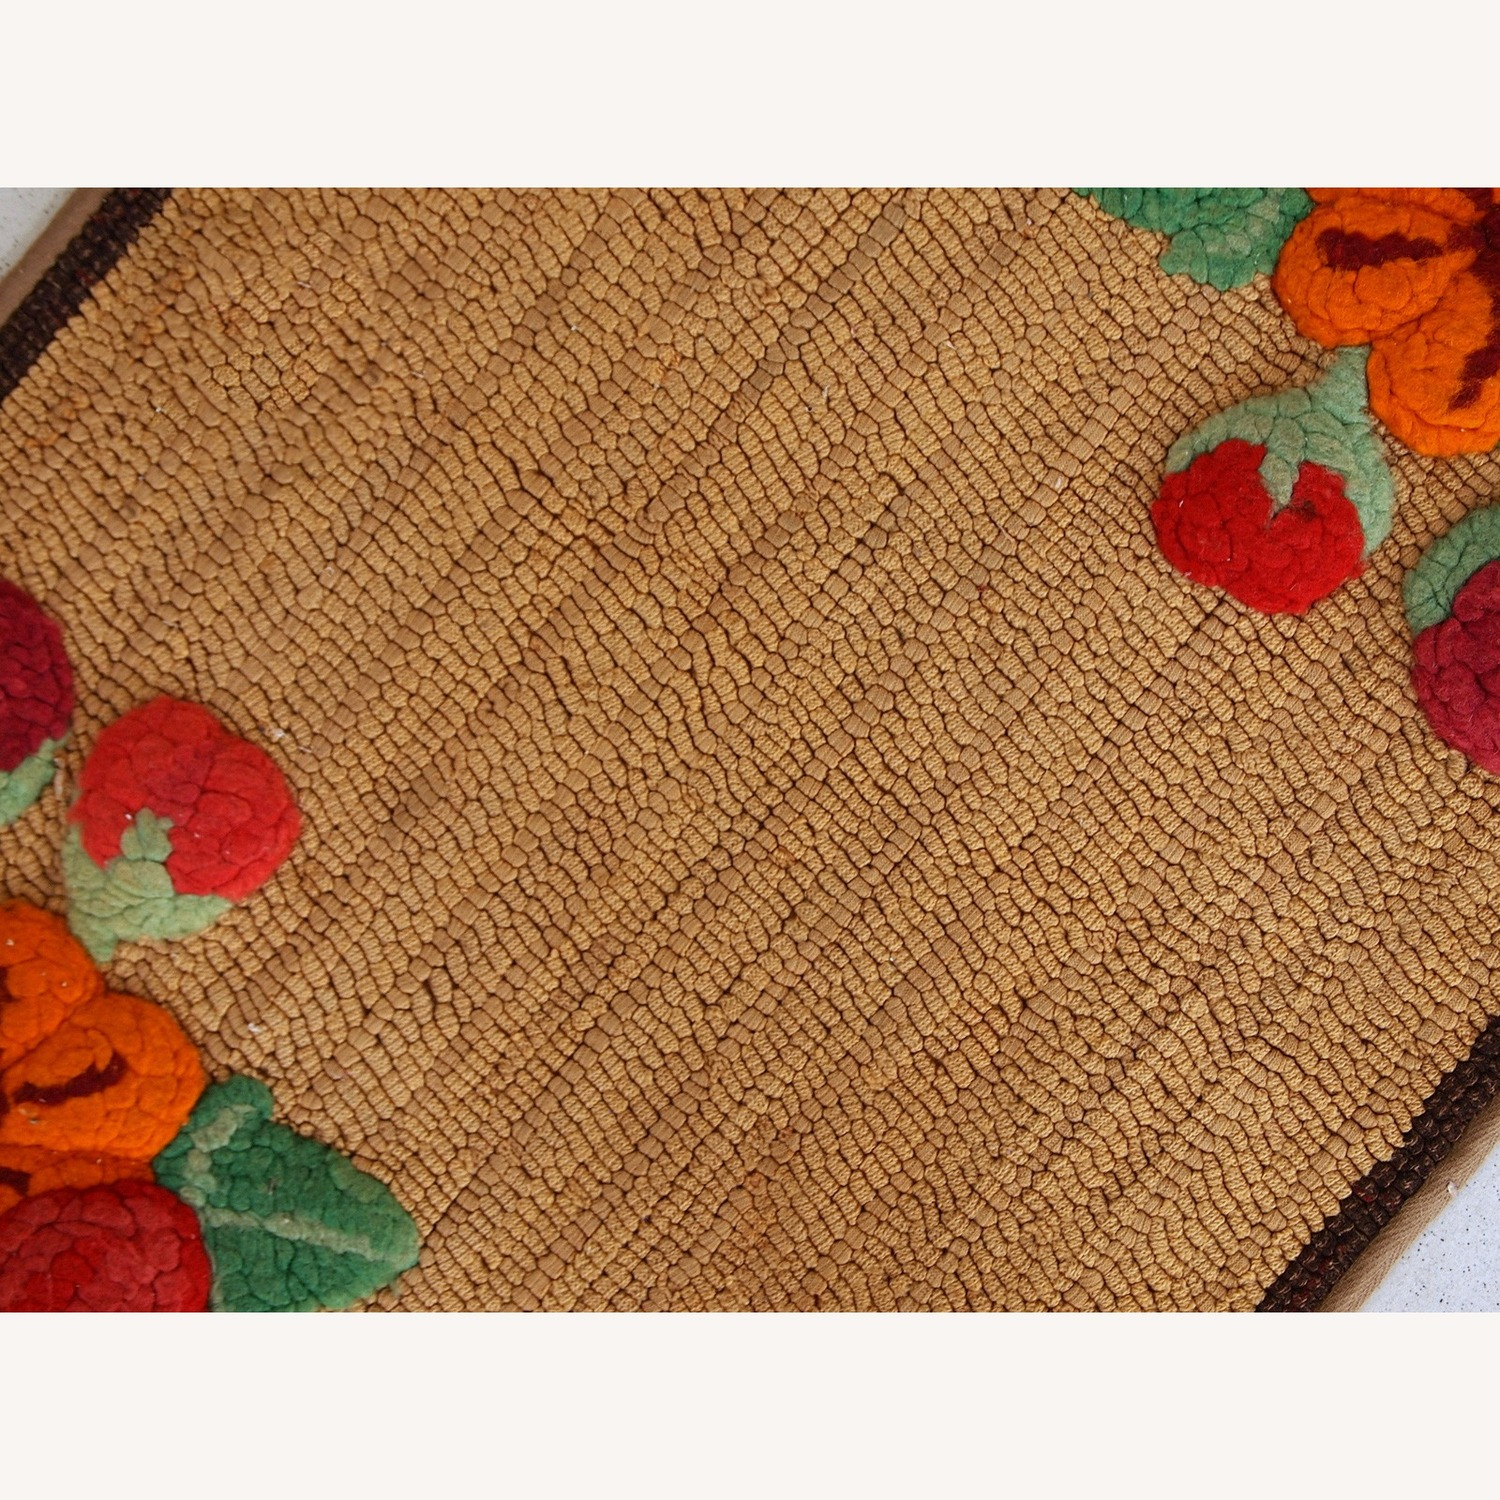 Handmade Antique American Hooked Rug - image-9